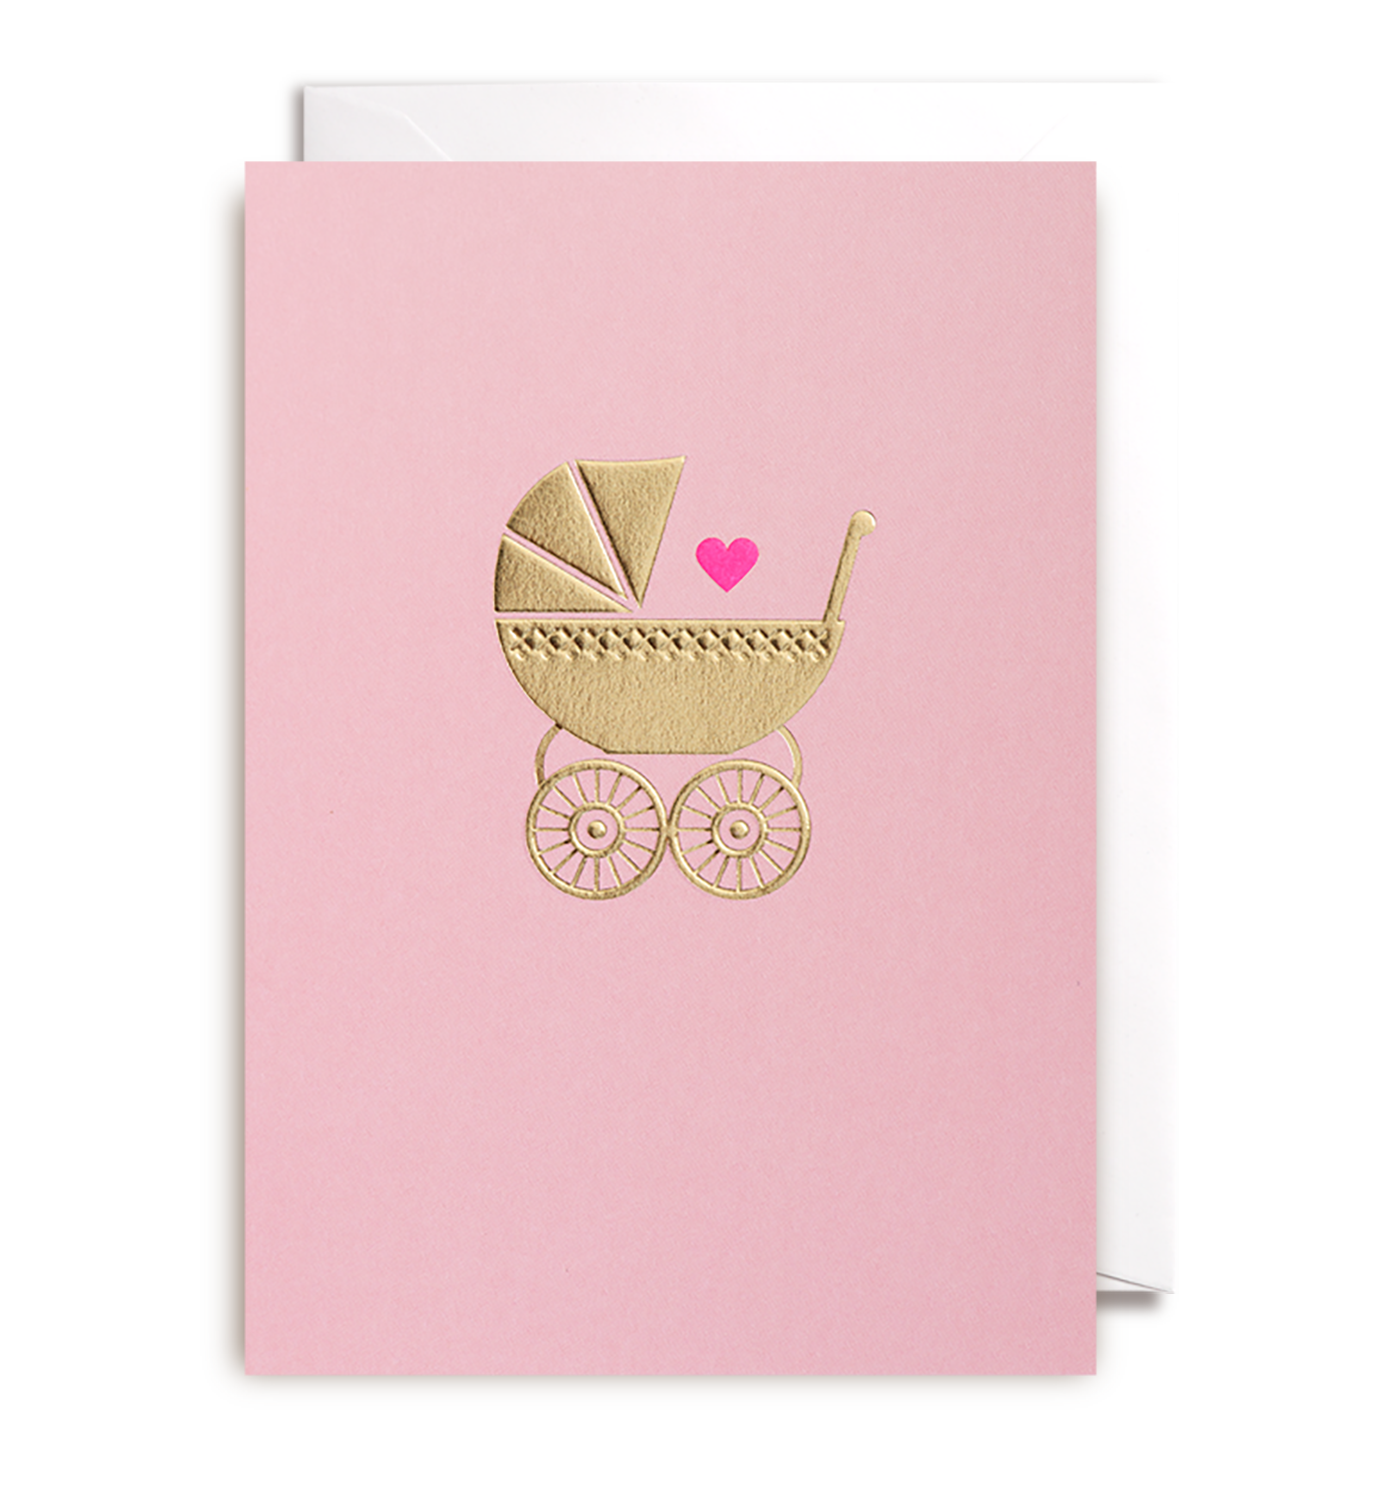 Baby girl greeting card by postco lagom design baby girl greeting card lagom design m4hsunfo